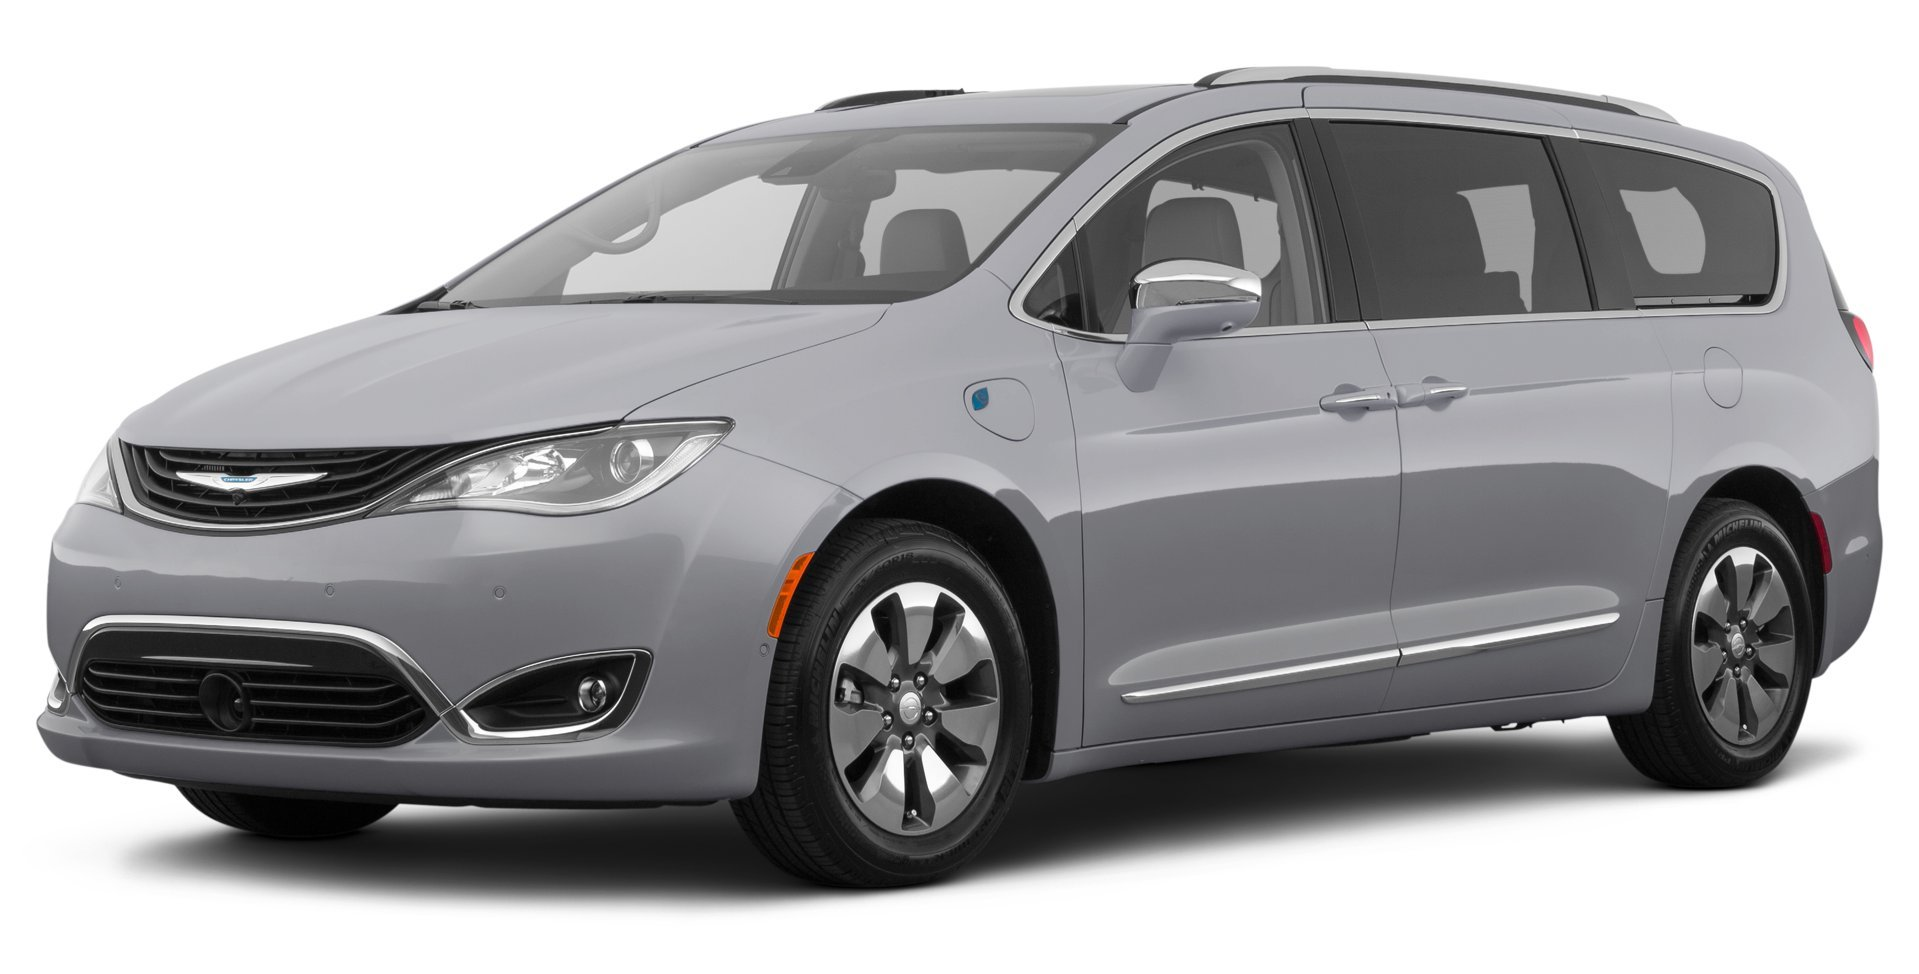 2017 chrysler pacifica reviews images and specs vehicles. Black Bedroom Furniture Sets. Home Design Ideas